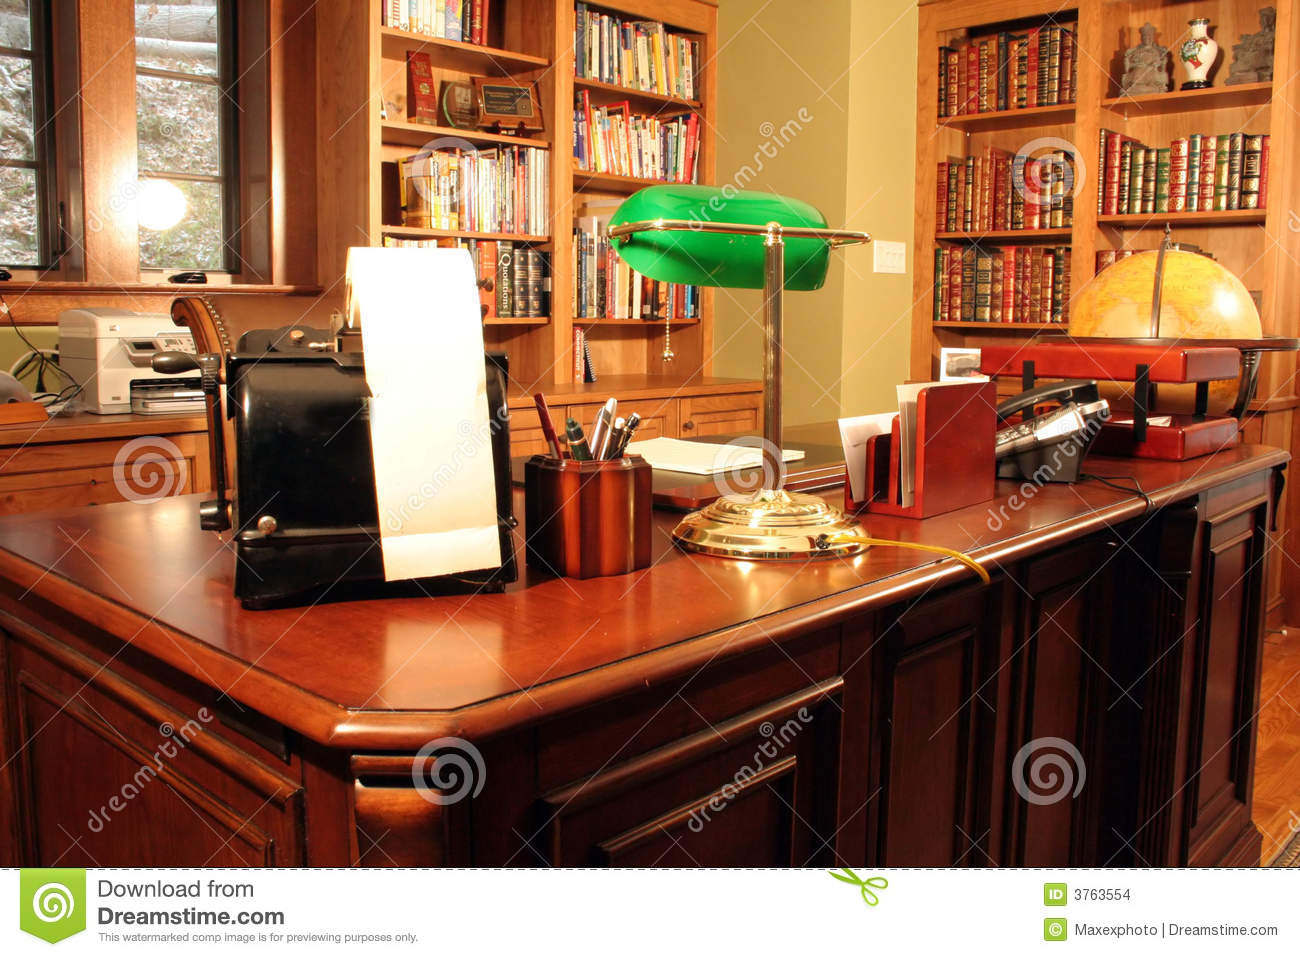 home office bookshelves. Home Office And Bookshelves Stock Photo - Image Of Study, Office: 3763554 S